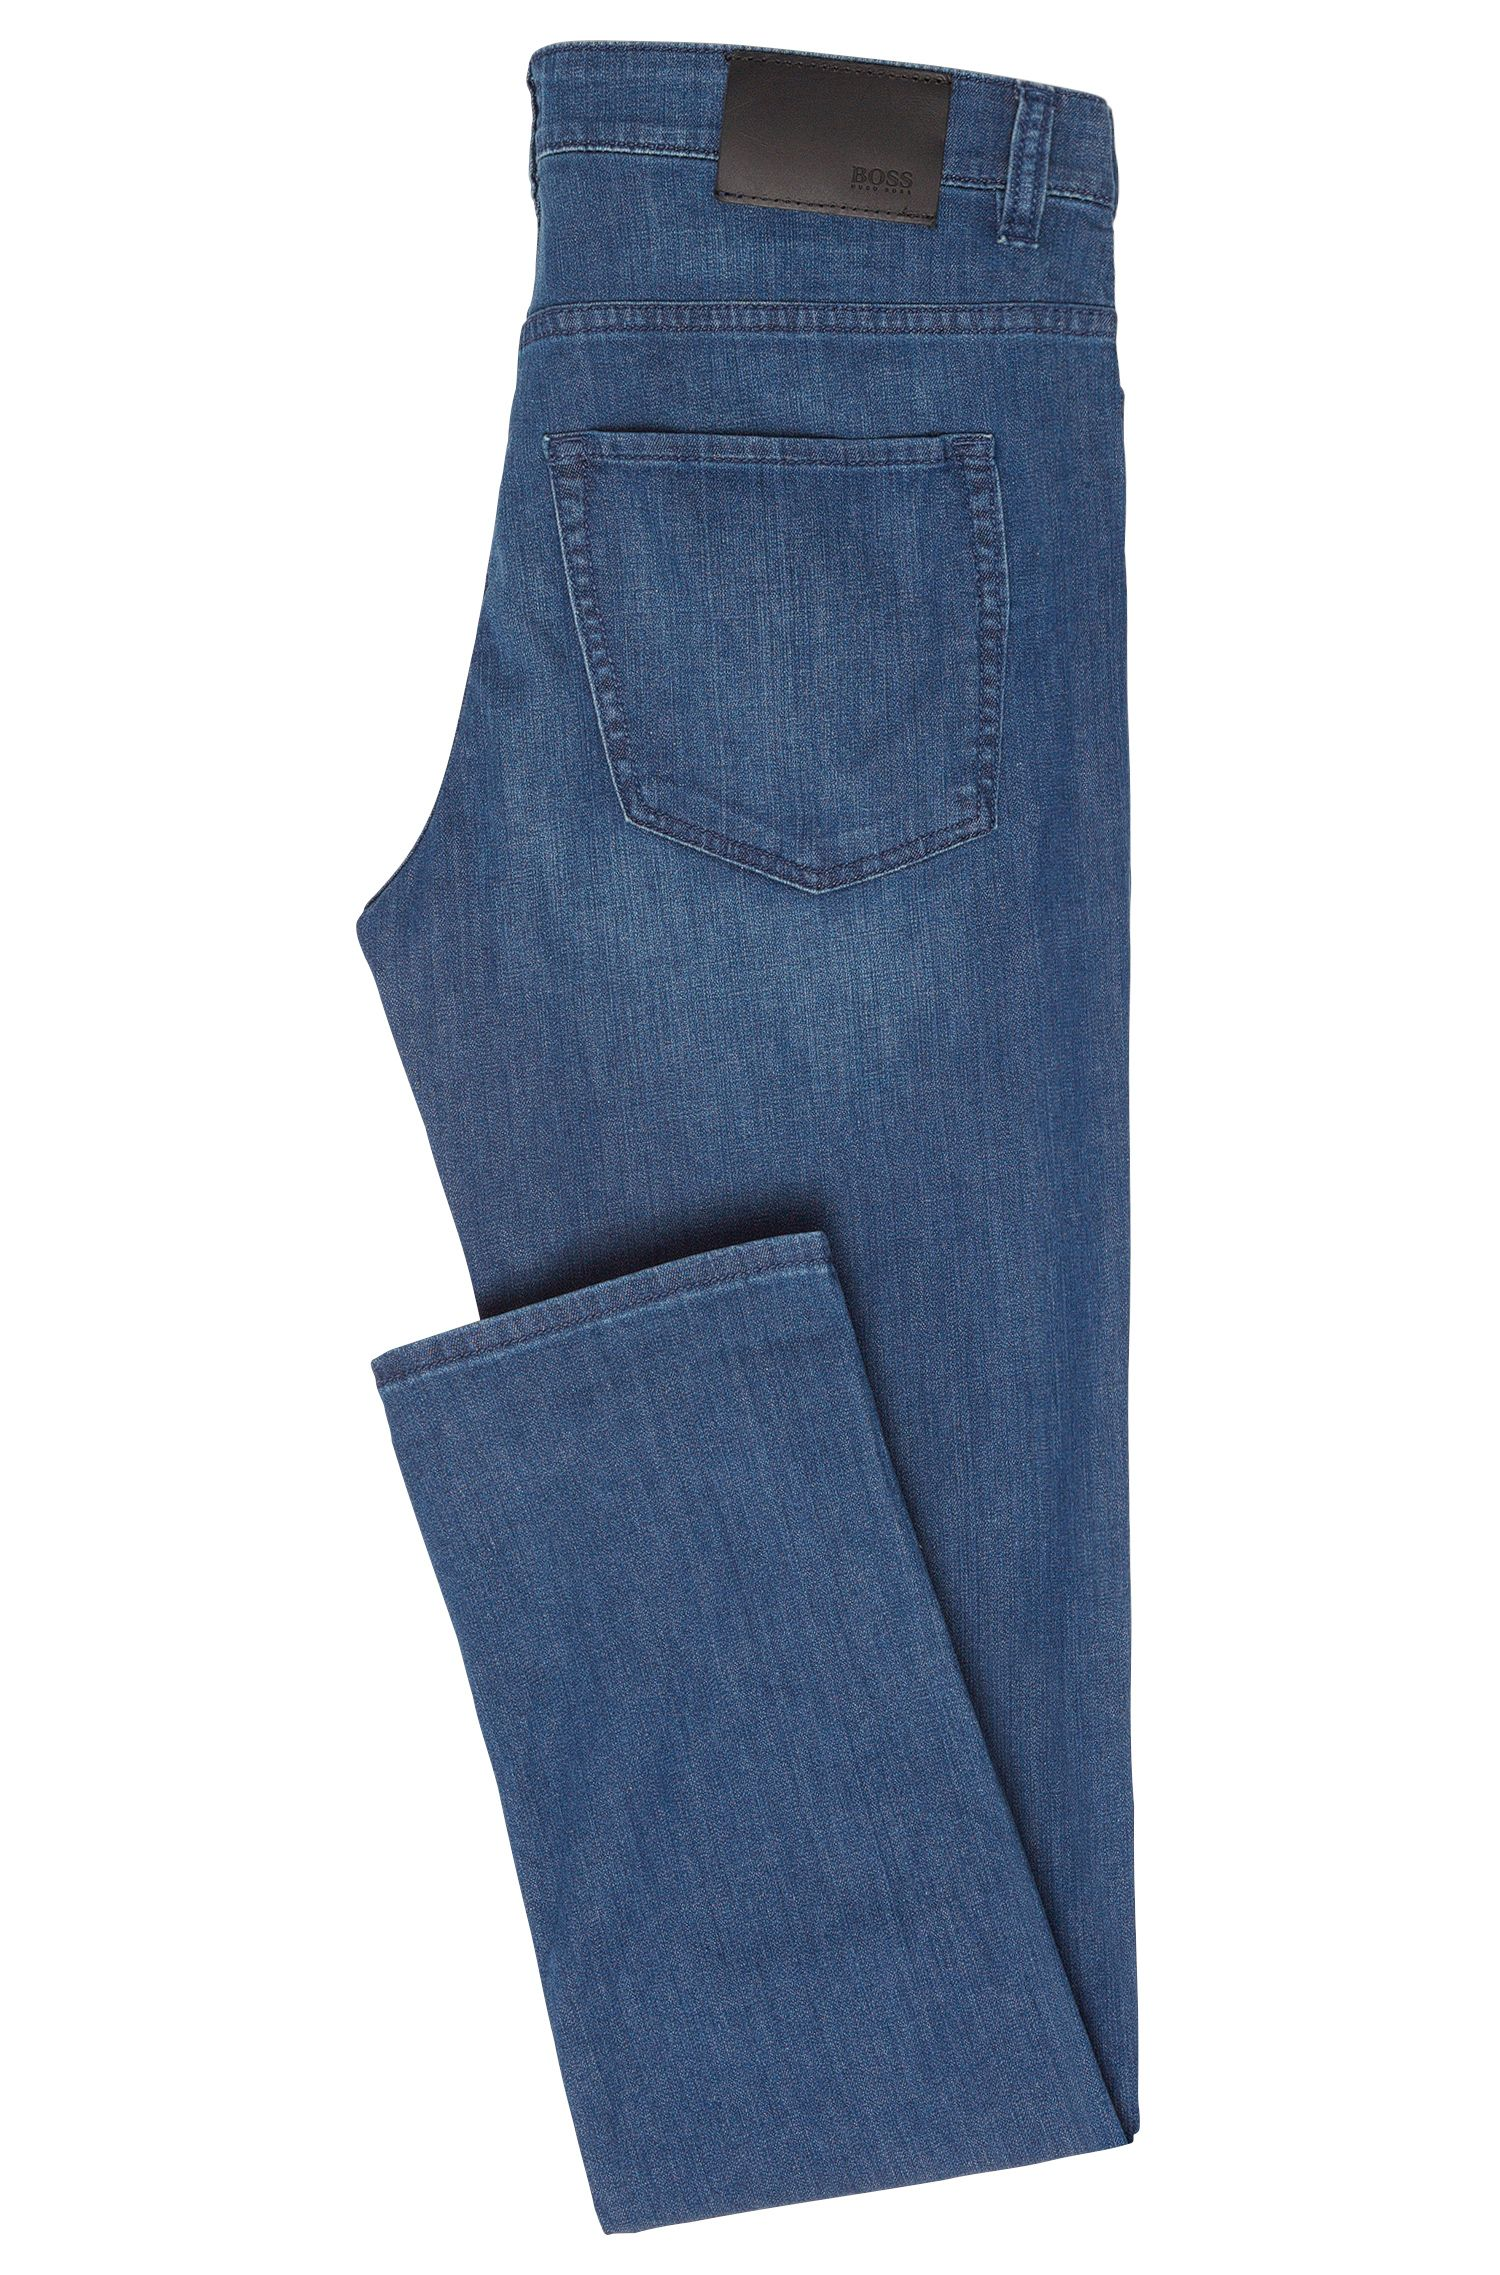 Slim-Fit Jeans aus Stretch-Baumwolle: 'Delaware3'